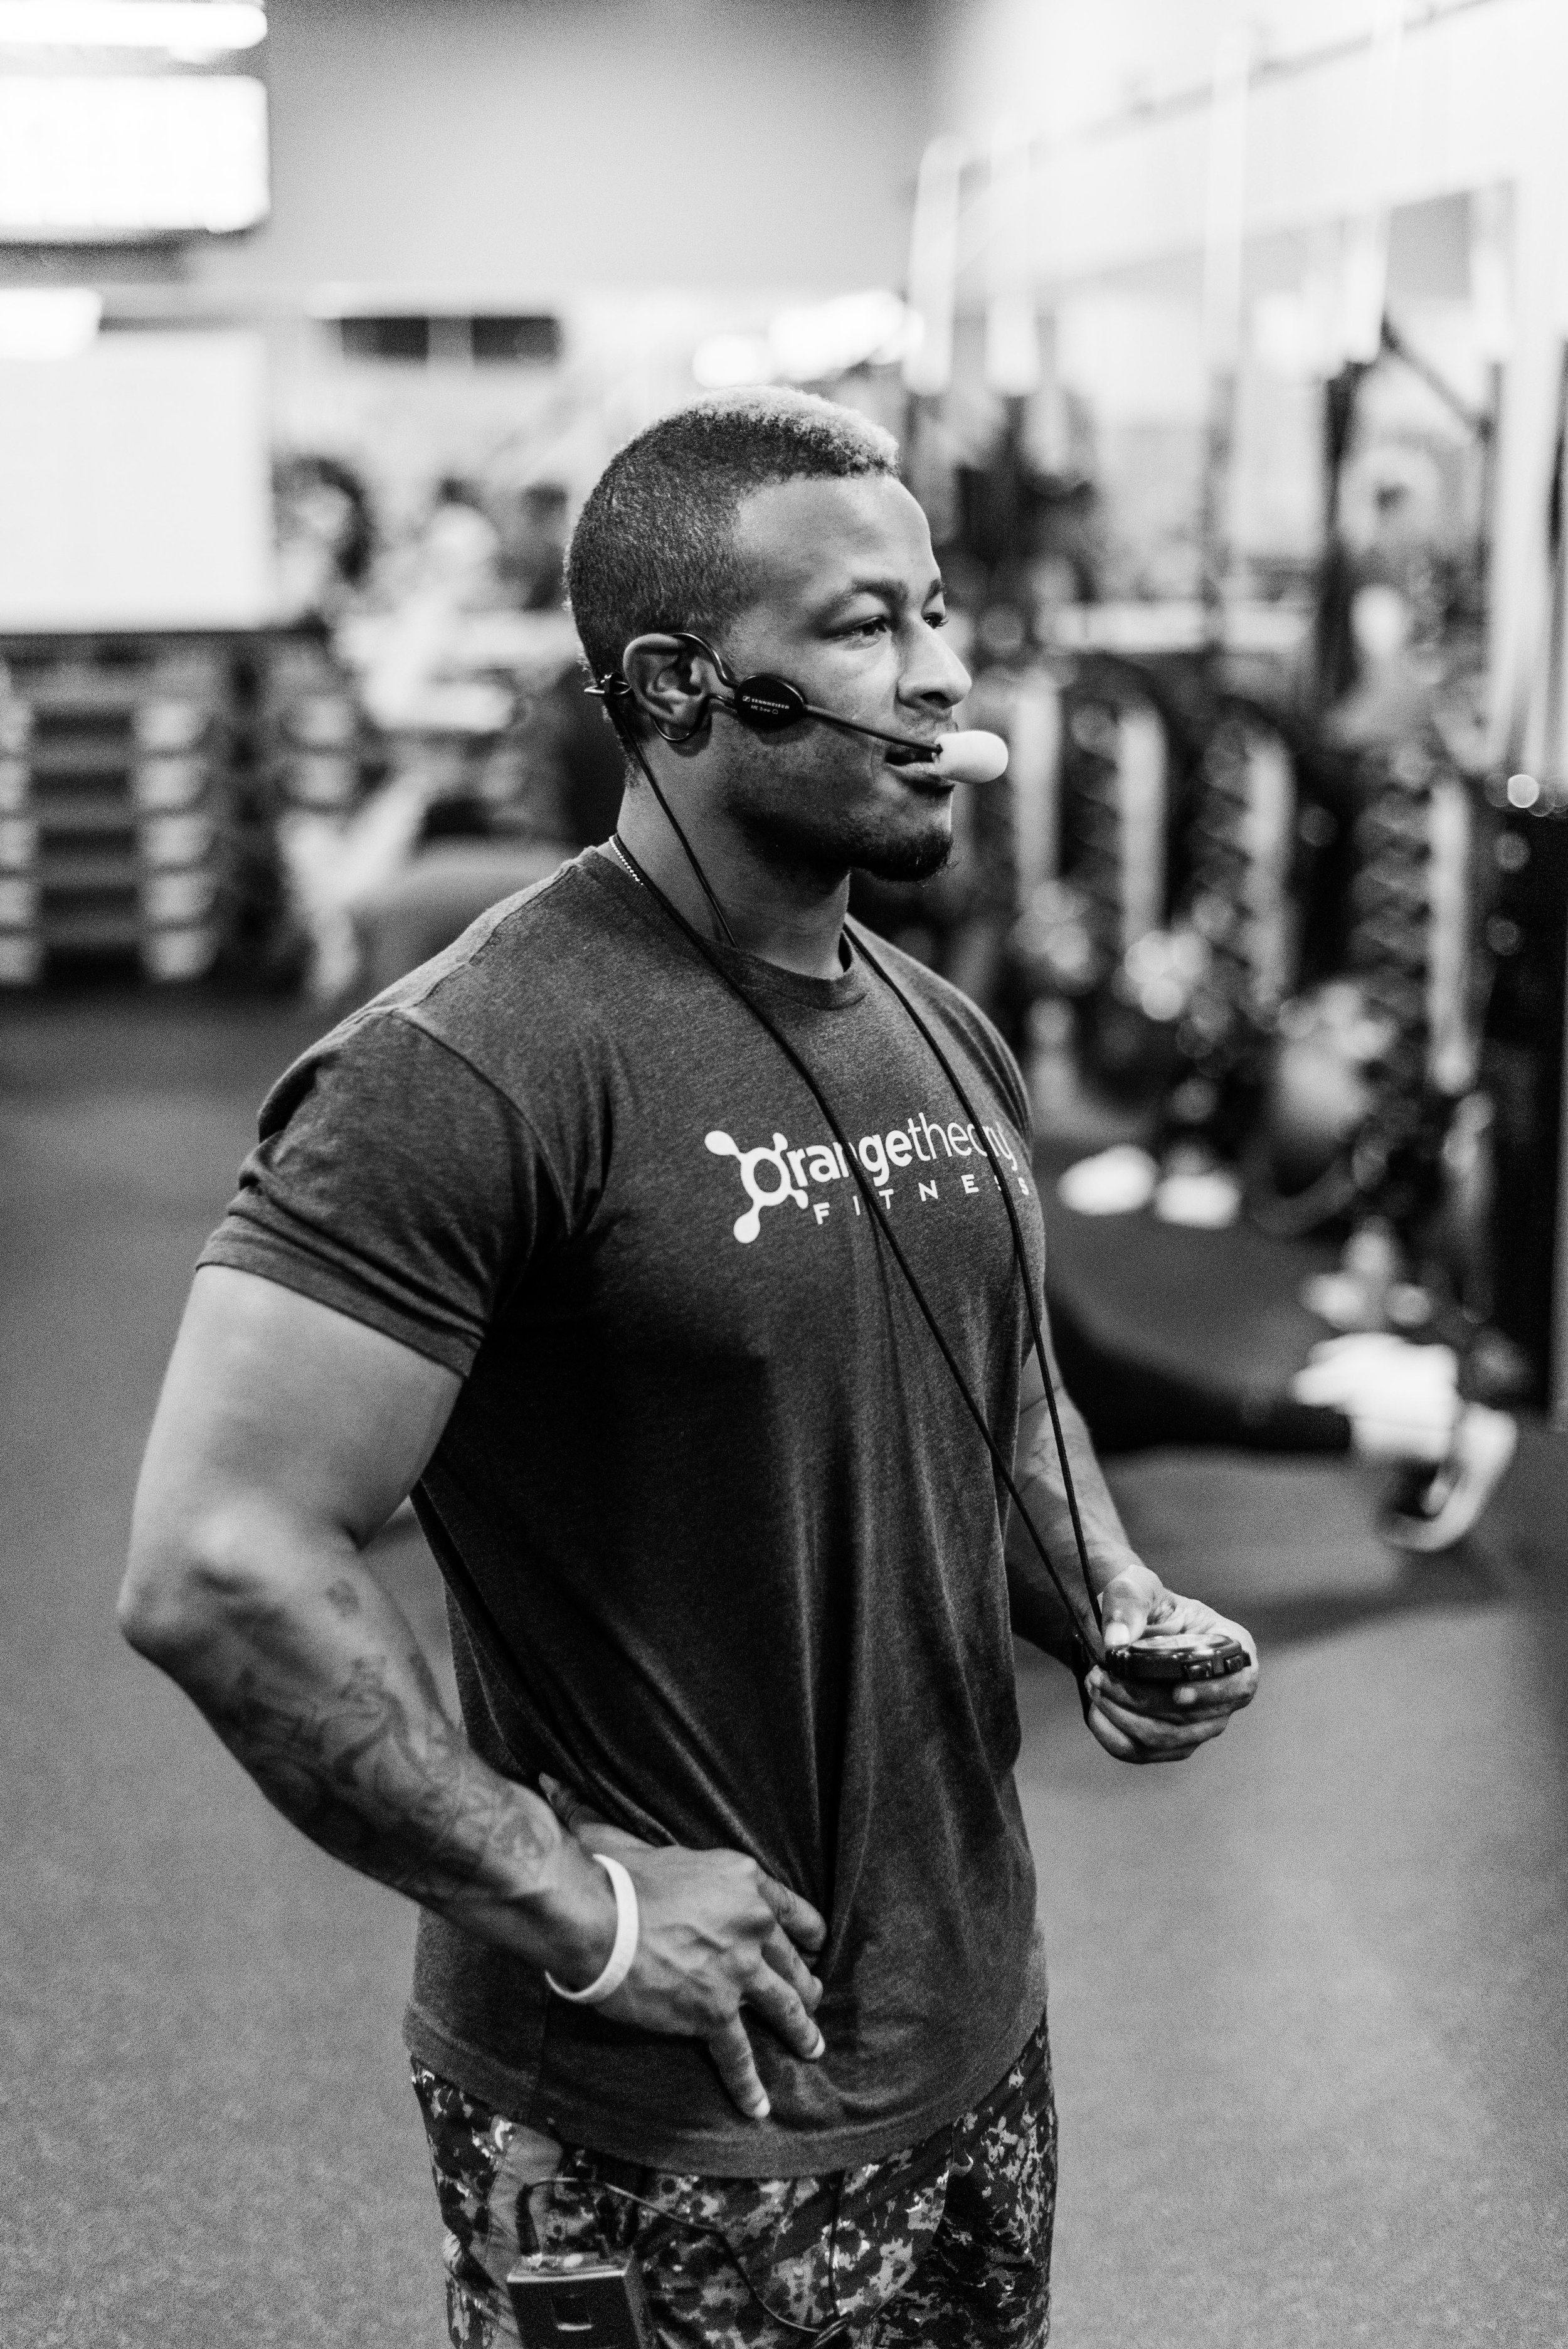 Justin works as one of the head trainers at Orange Theory Fitness in Austin.